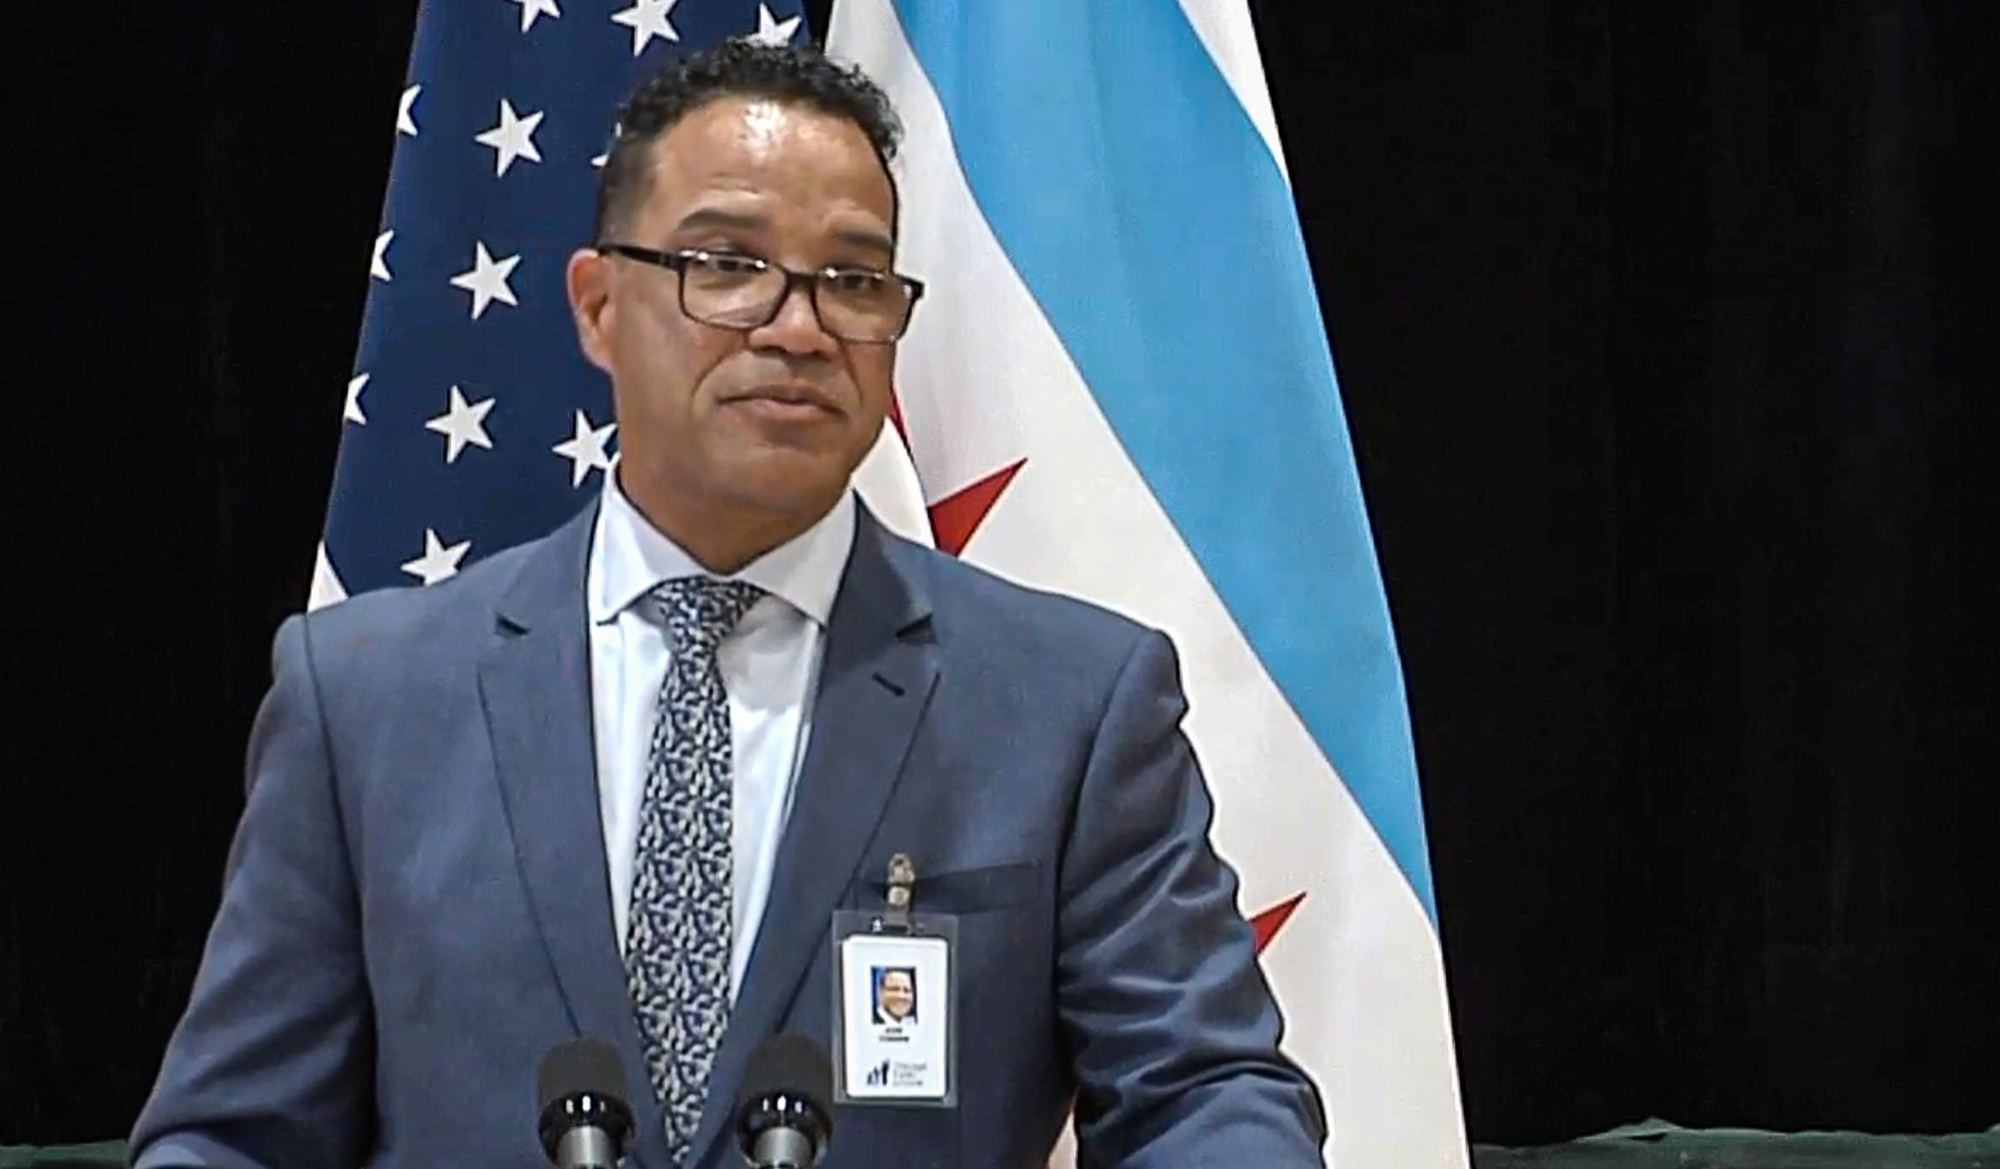 Dr. JoséTorres speaks at a podium in front of the flags of the United States and Chicago.